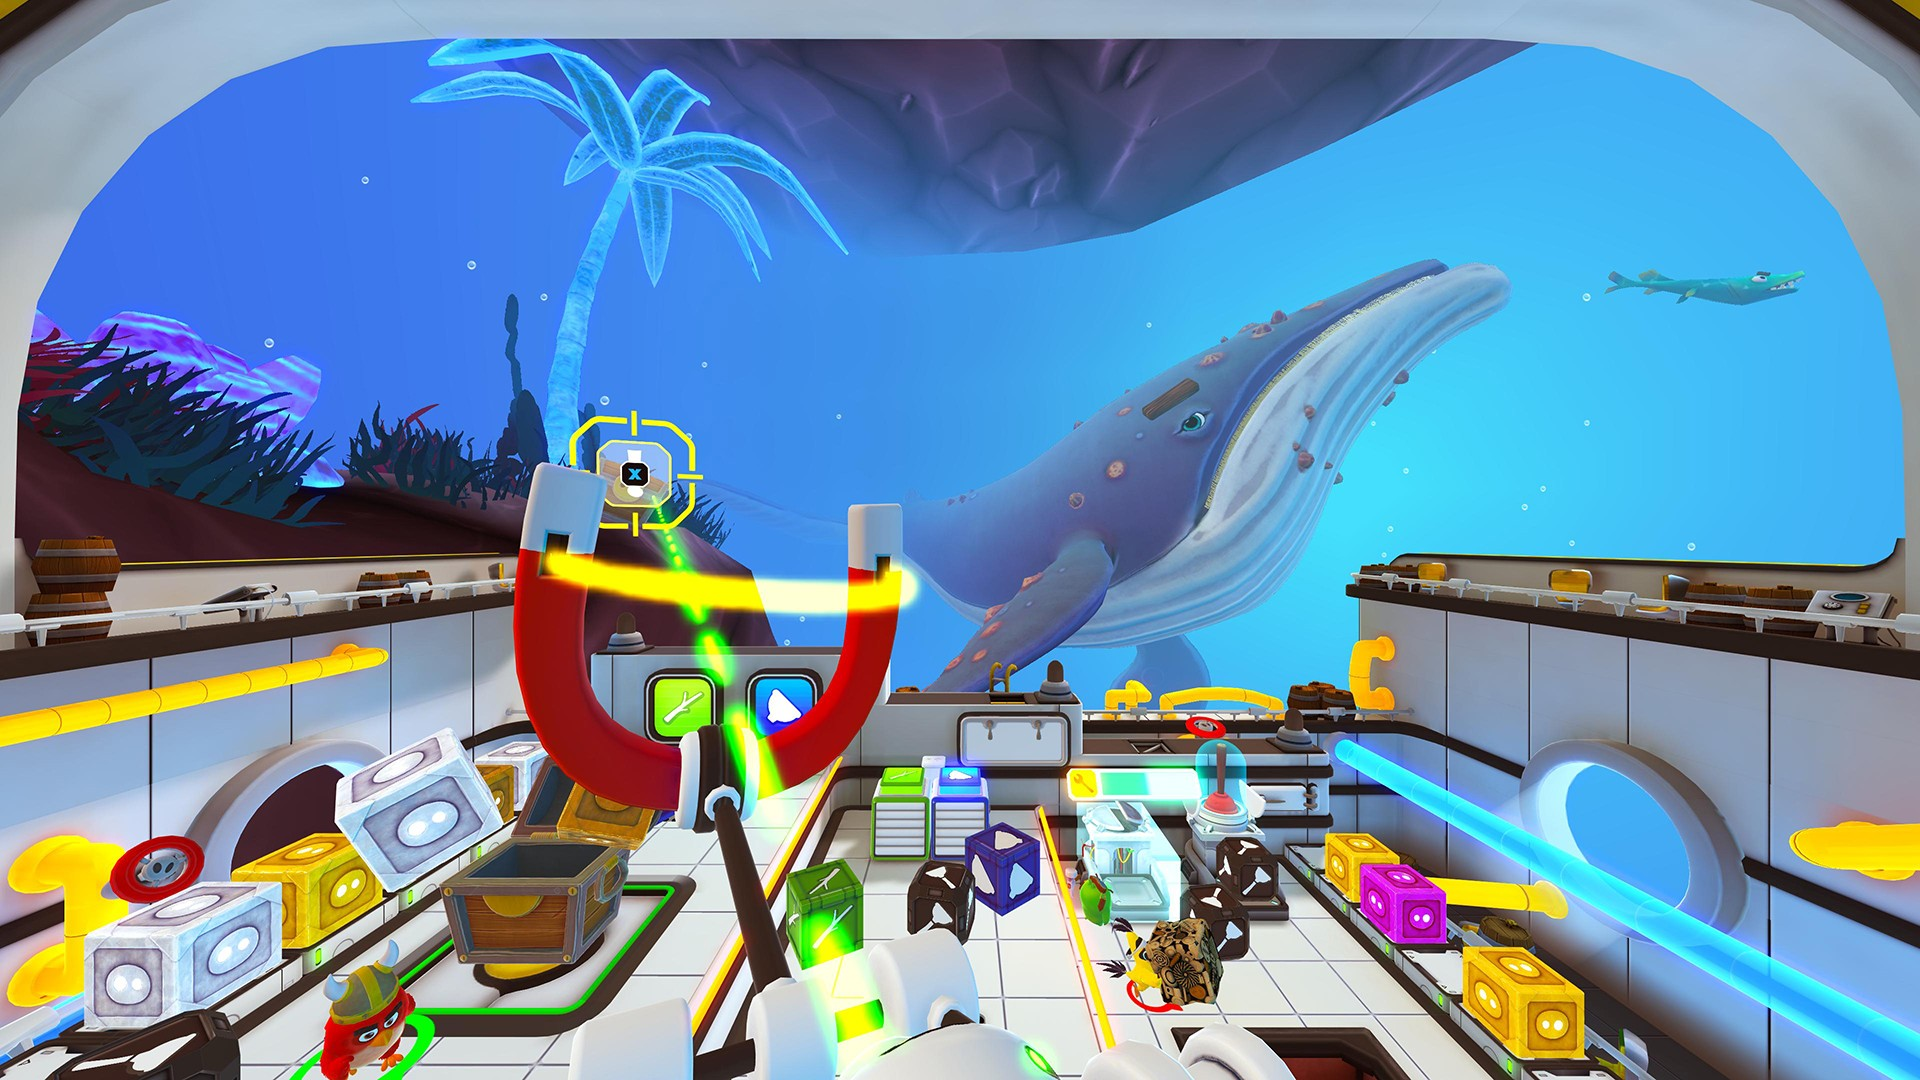 Action, adventure, casual, Family, PlayStation VR, PS4, PS4 Review, PSVR, PSVR Review, Puzzle, Rovio Entertainment, The Angry Birds, The Angry Birds Movie 2 VR: Under Pressure, The Angry Birds Movie 2 VR: Under Pressure Review, The Angry Birds Review, XR Games